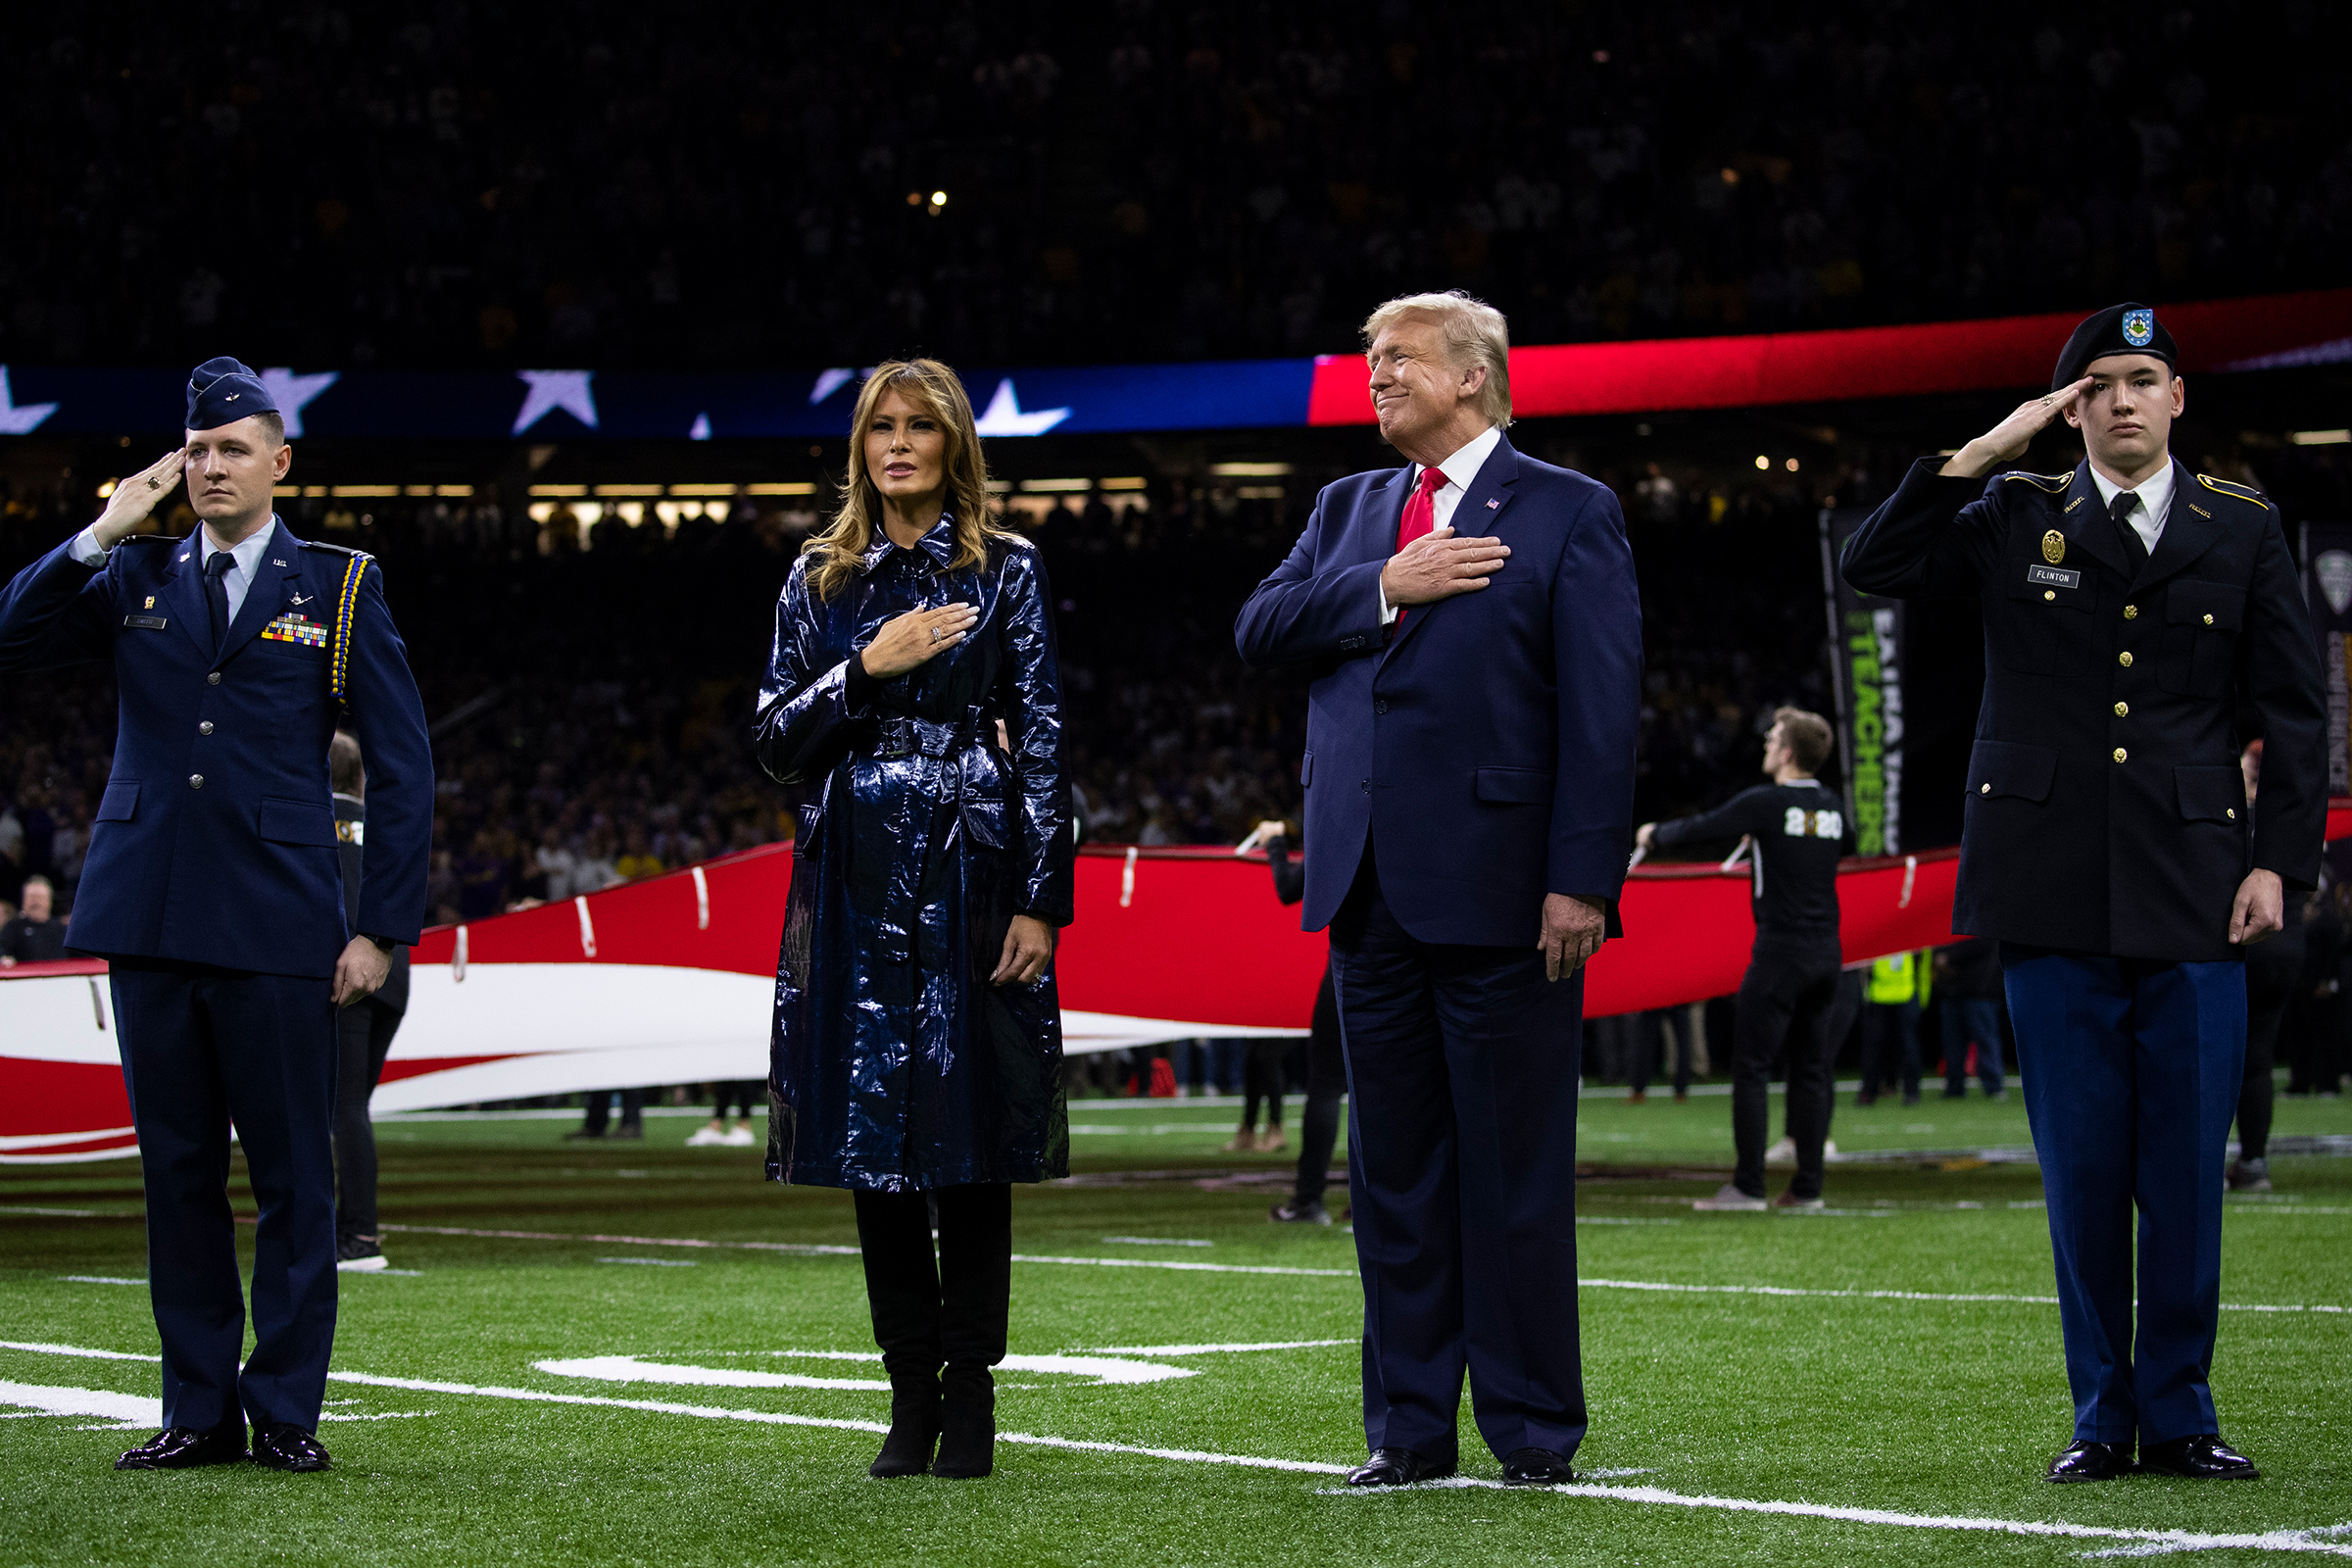 President Donald Trump and first lady Melania Trump stand for the national anthem before the beginning of the College Football Playoff National Championship game on Jan. 13 in New Orleans